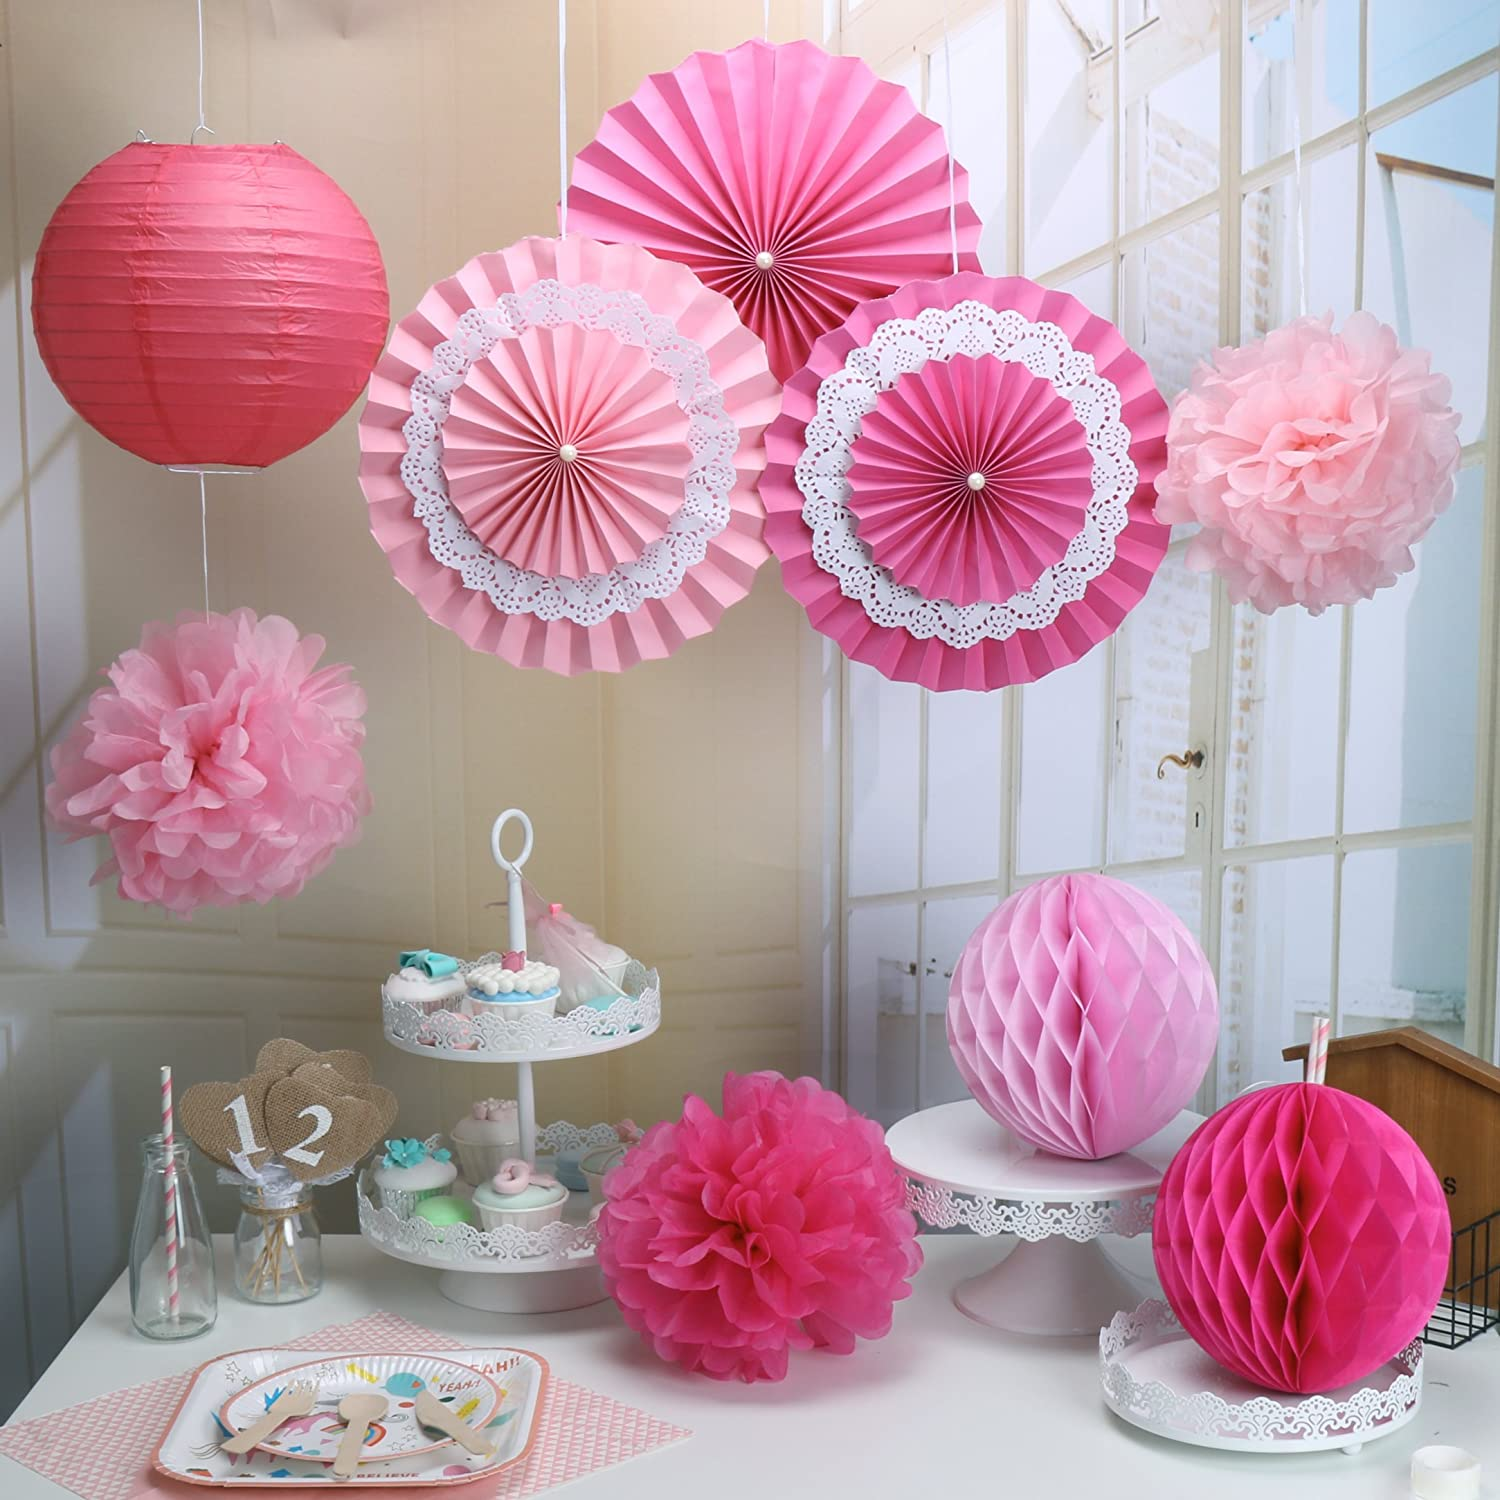 Amazon.com: RiscaWin Set for Decoration Paper Fan,Tissue Paper Pom ...